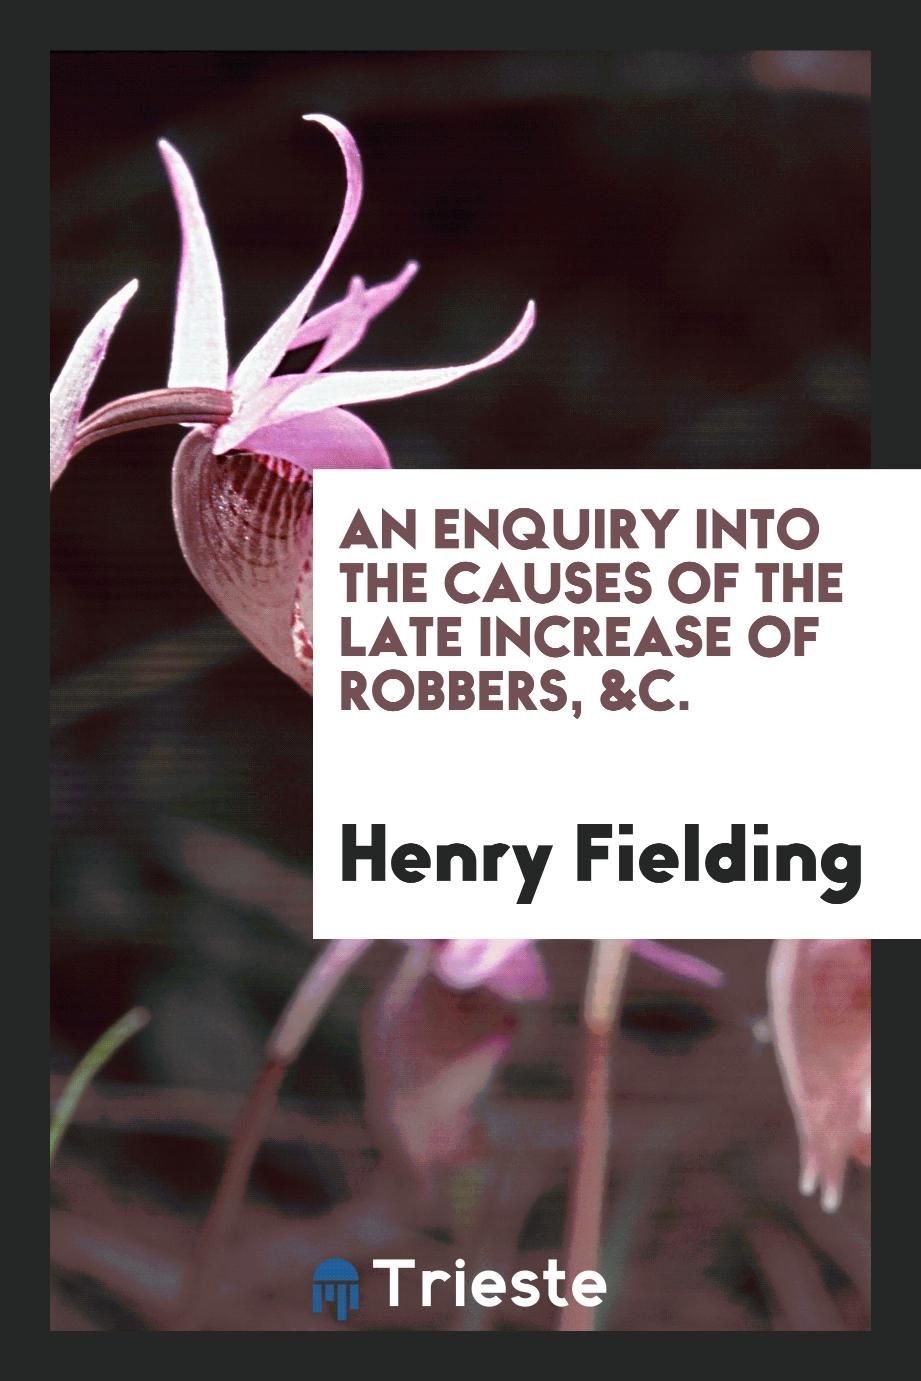 An Enquiry Into the Causes of the Late Increase of Robbers, &c.